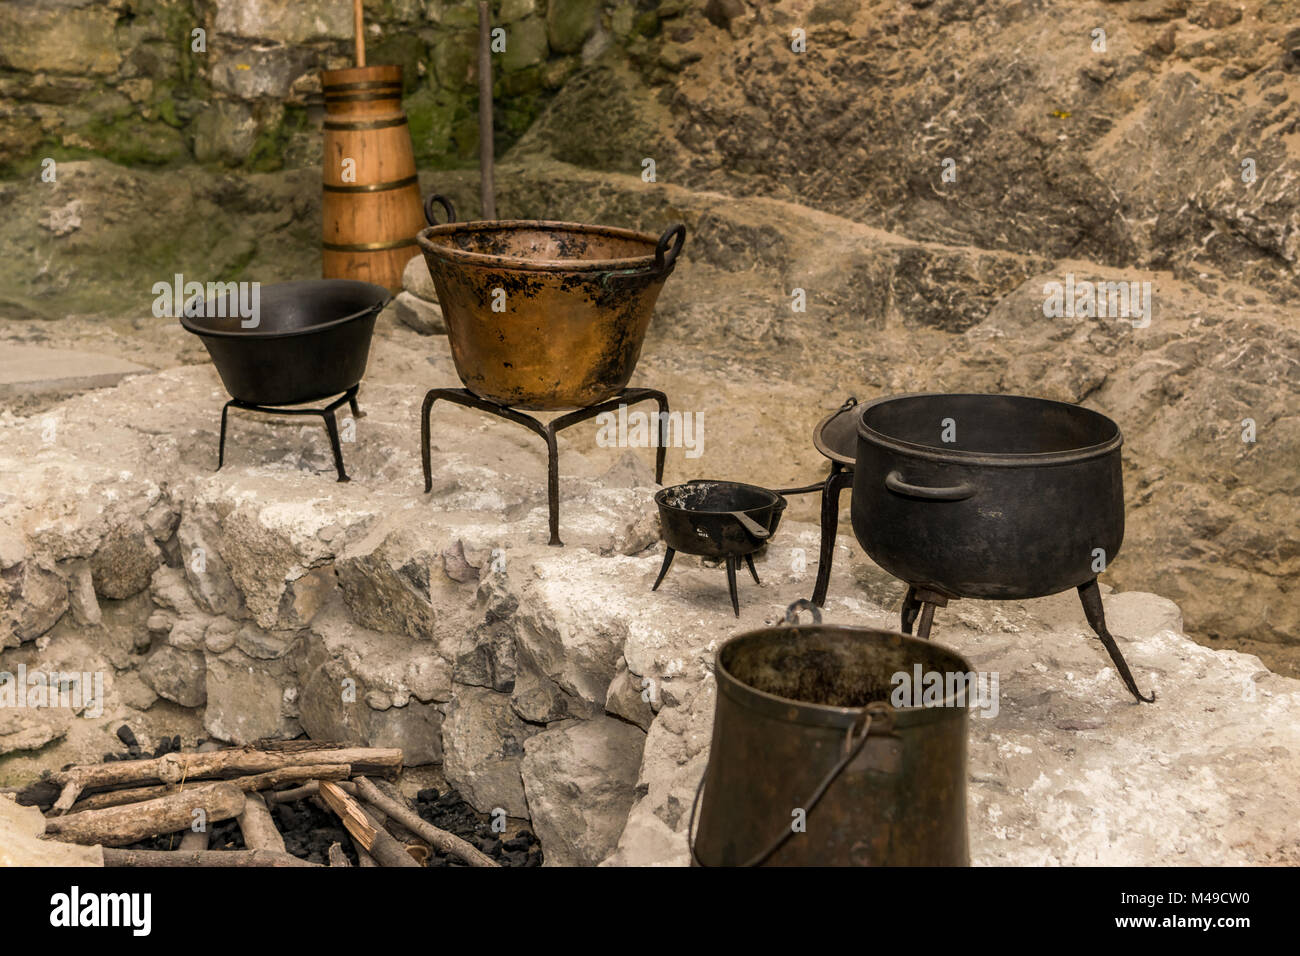 Historical Cooking Fireplace Stock Photos Amp Historical